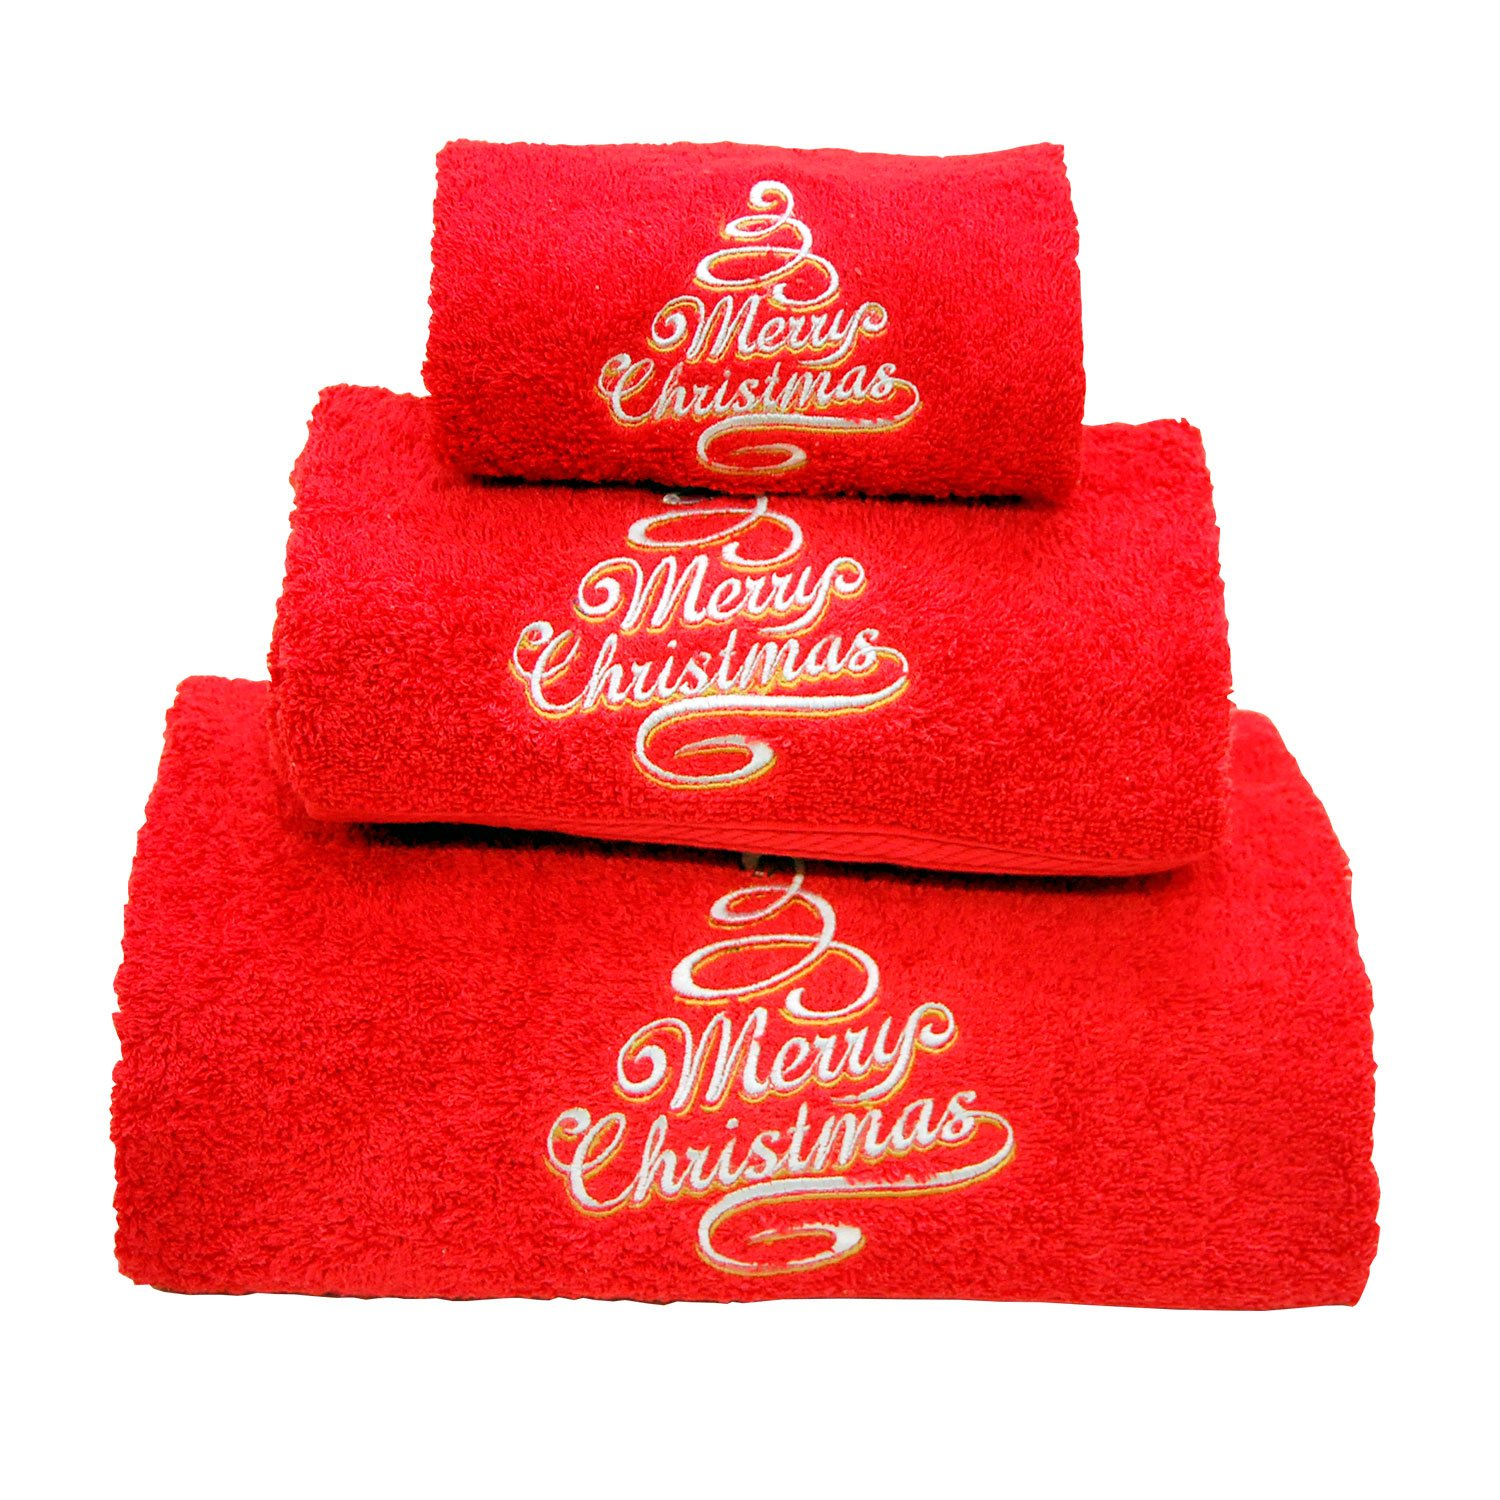 Xmas Set of 3 embroidered red bath towels – Ref. Merry Christmas Maria Teixeira e Andrade Lda